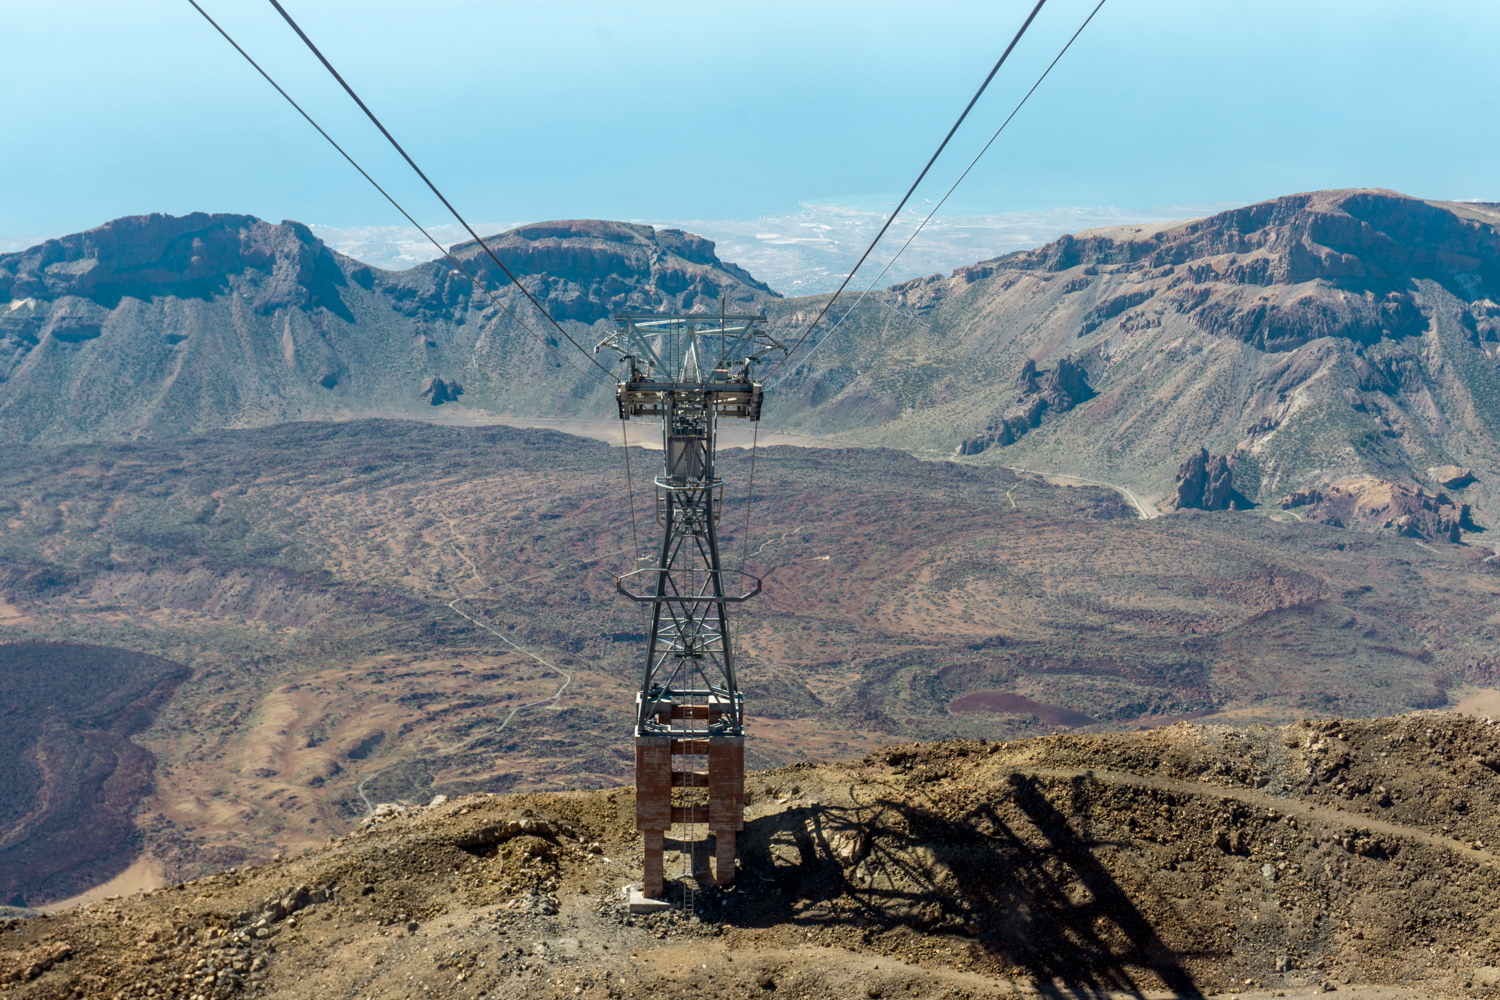 We took a cable car to the top of Mount Teide.